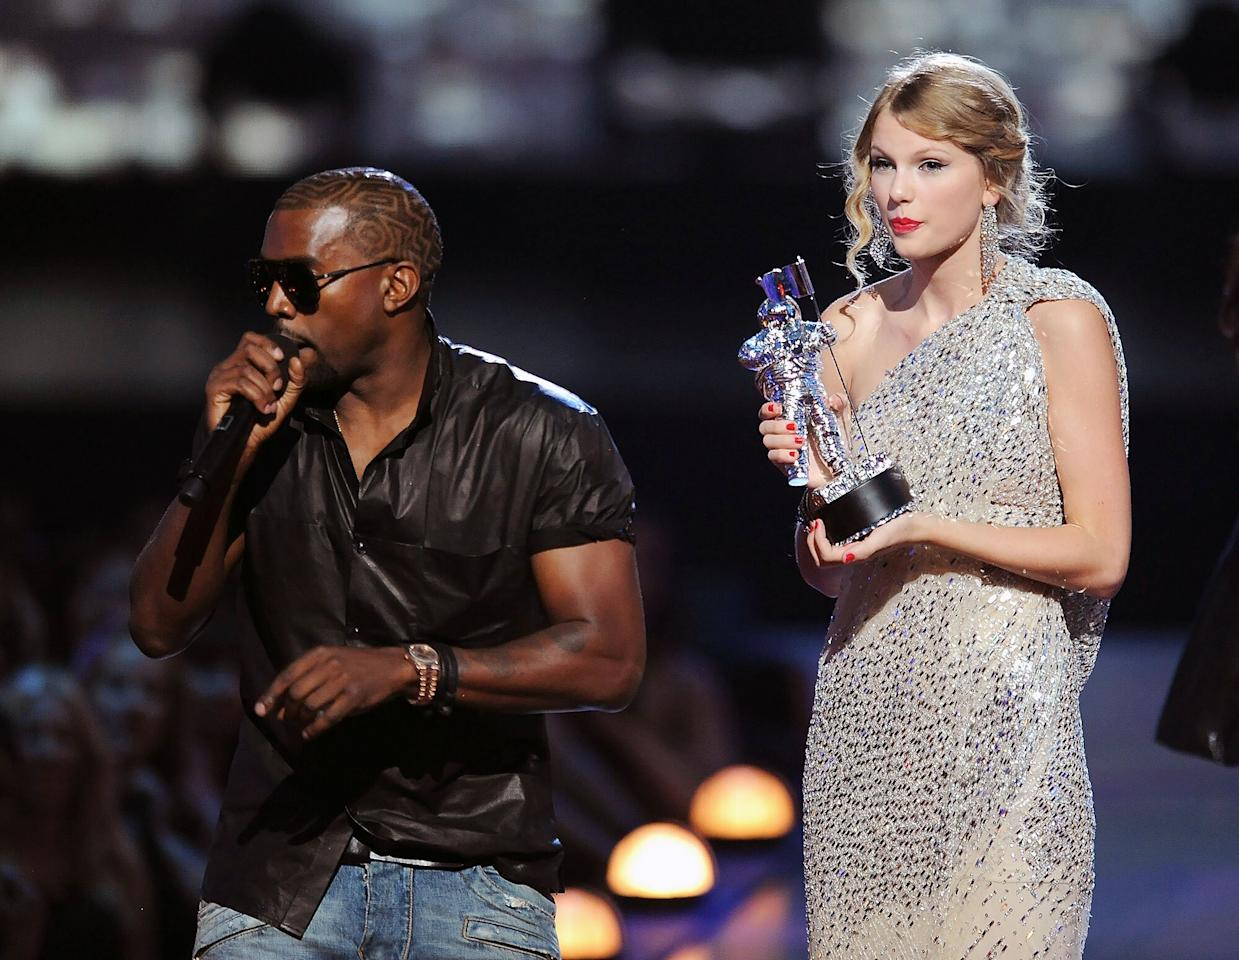 "During the 2009 MTV Video Music Awards, <a href=""https://people.com/music/taylor-swift-diary-entry-from-kanye-west-vmas/"">Kanye West interrupted Taylor Swift</a> to create one of the most infamous moments in recent pop culture history. As a fresh-faced Swift was accepting her award for female video of the year, West took the microphone and said ""Imma let you finish, but Beyoncé had one of the best videos of all time."""